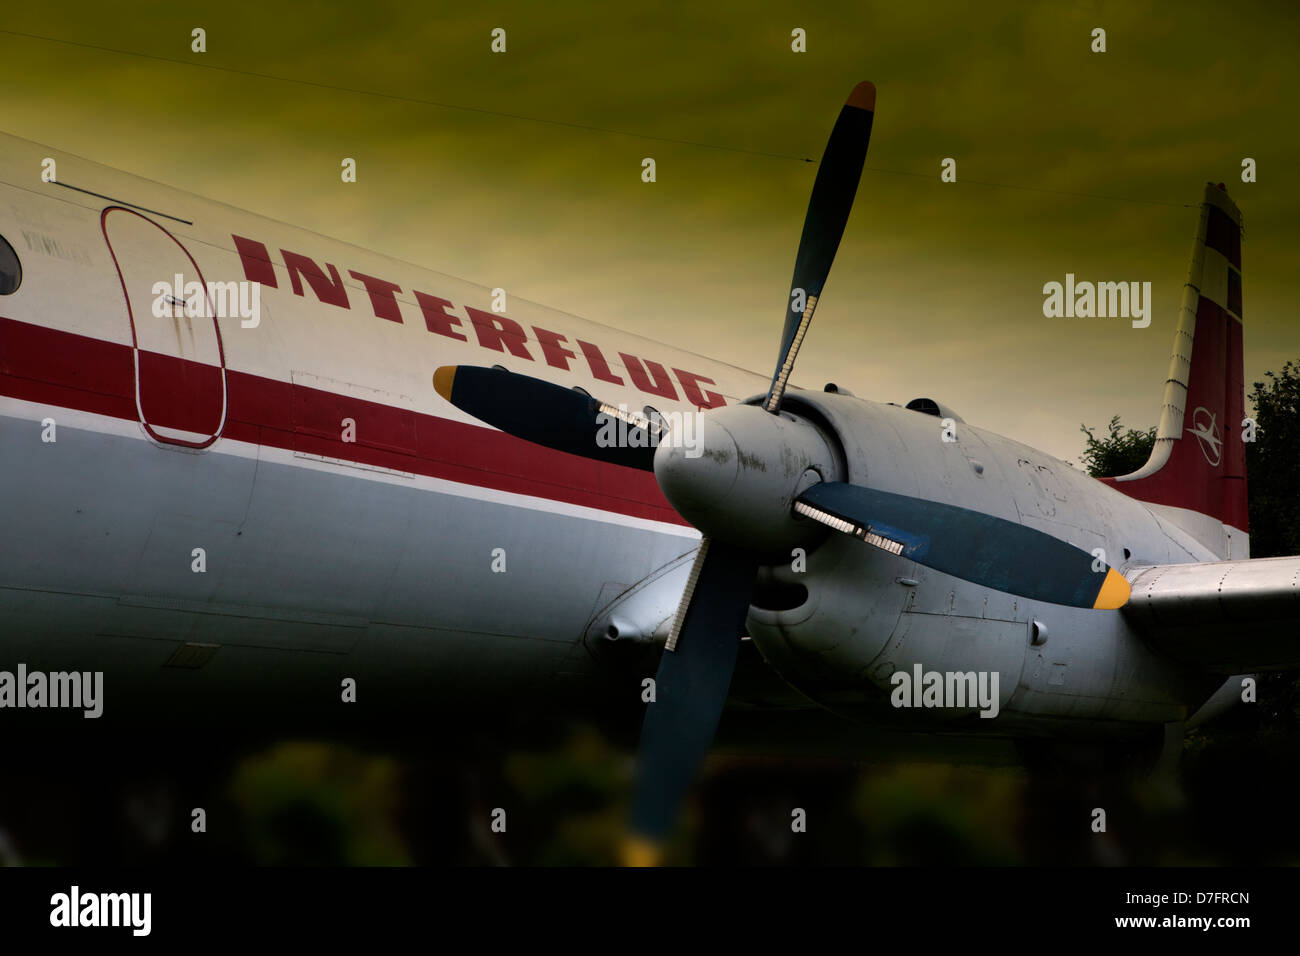 the passenger aircraft Lockheed Super Constellation or Super Connie, Aircraft Collection Hermeskeil, Germany, Europe - Stock Image